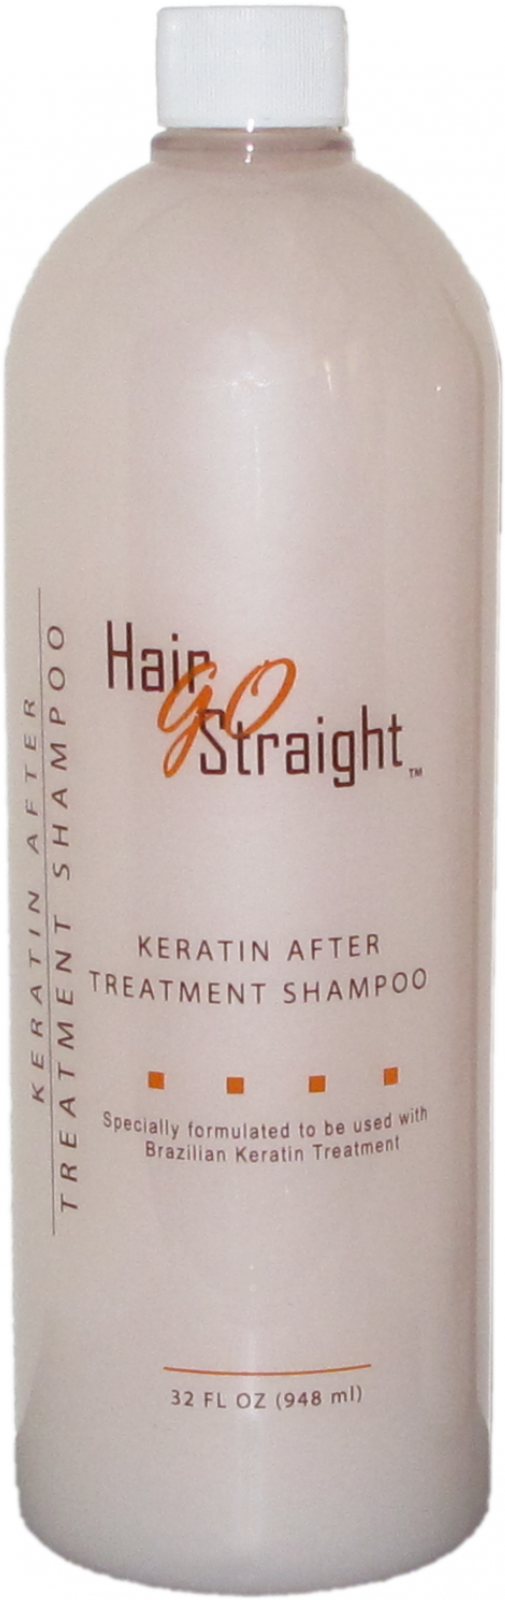 SHAMPOING%20KERATINE%20HAIR%20GO%20STRAIGHT%201000%20ml